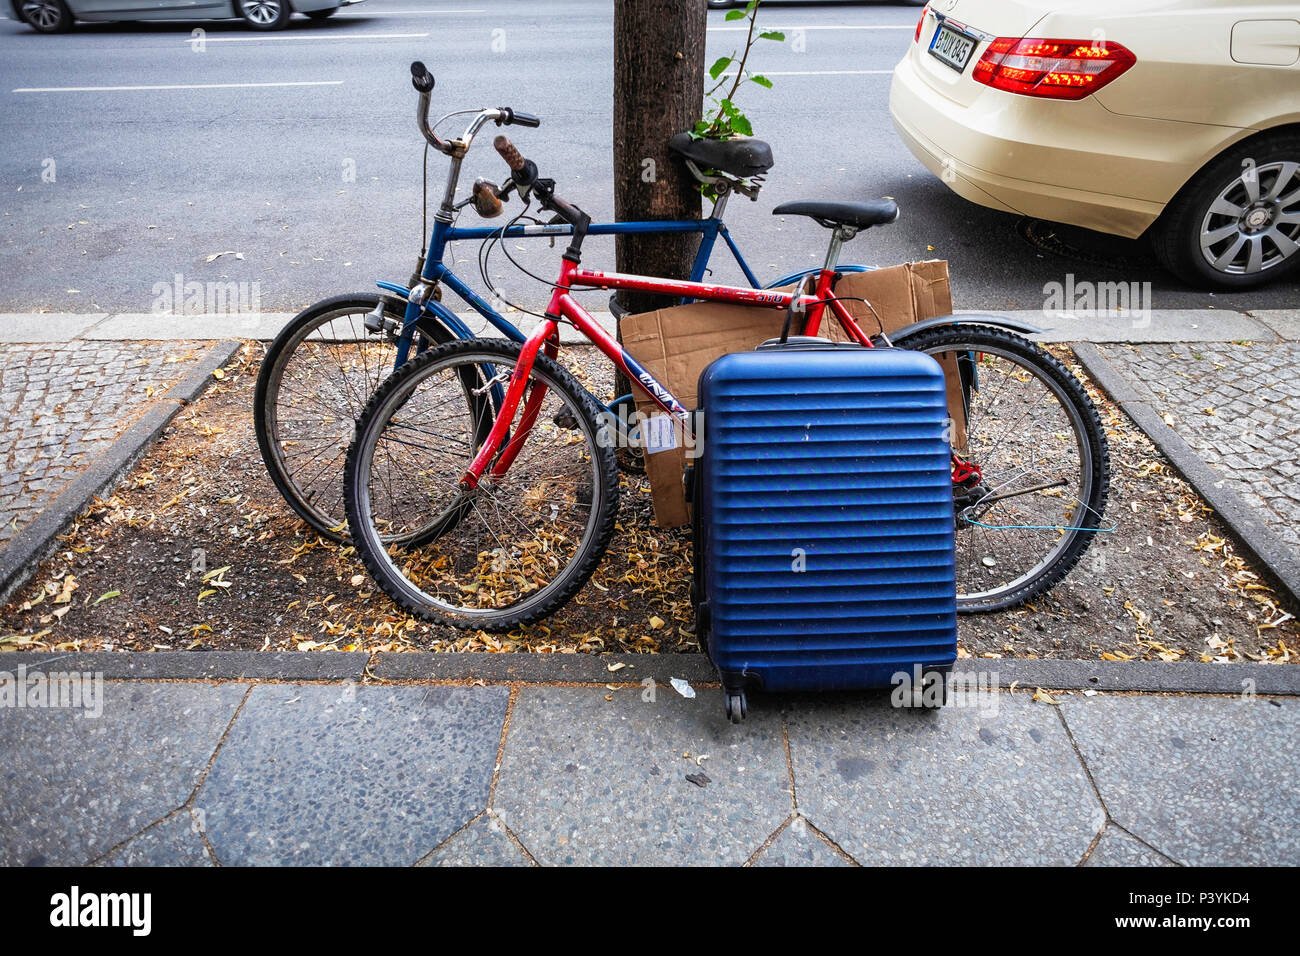 Possessions of the well equipped tourist - Bicycle, wheeled suitcase and spare wire coat hanger, Mitte,Berlin - Stock Image